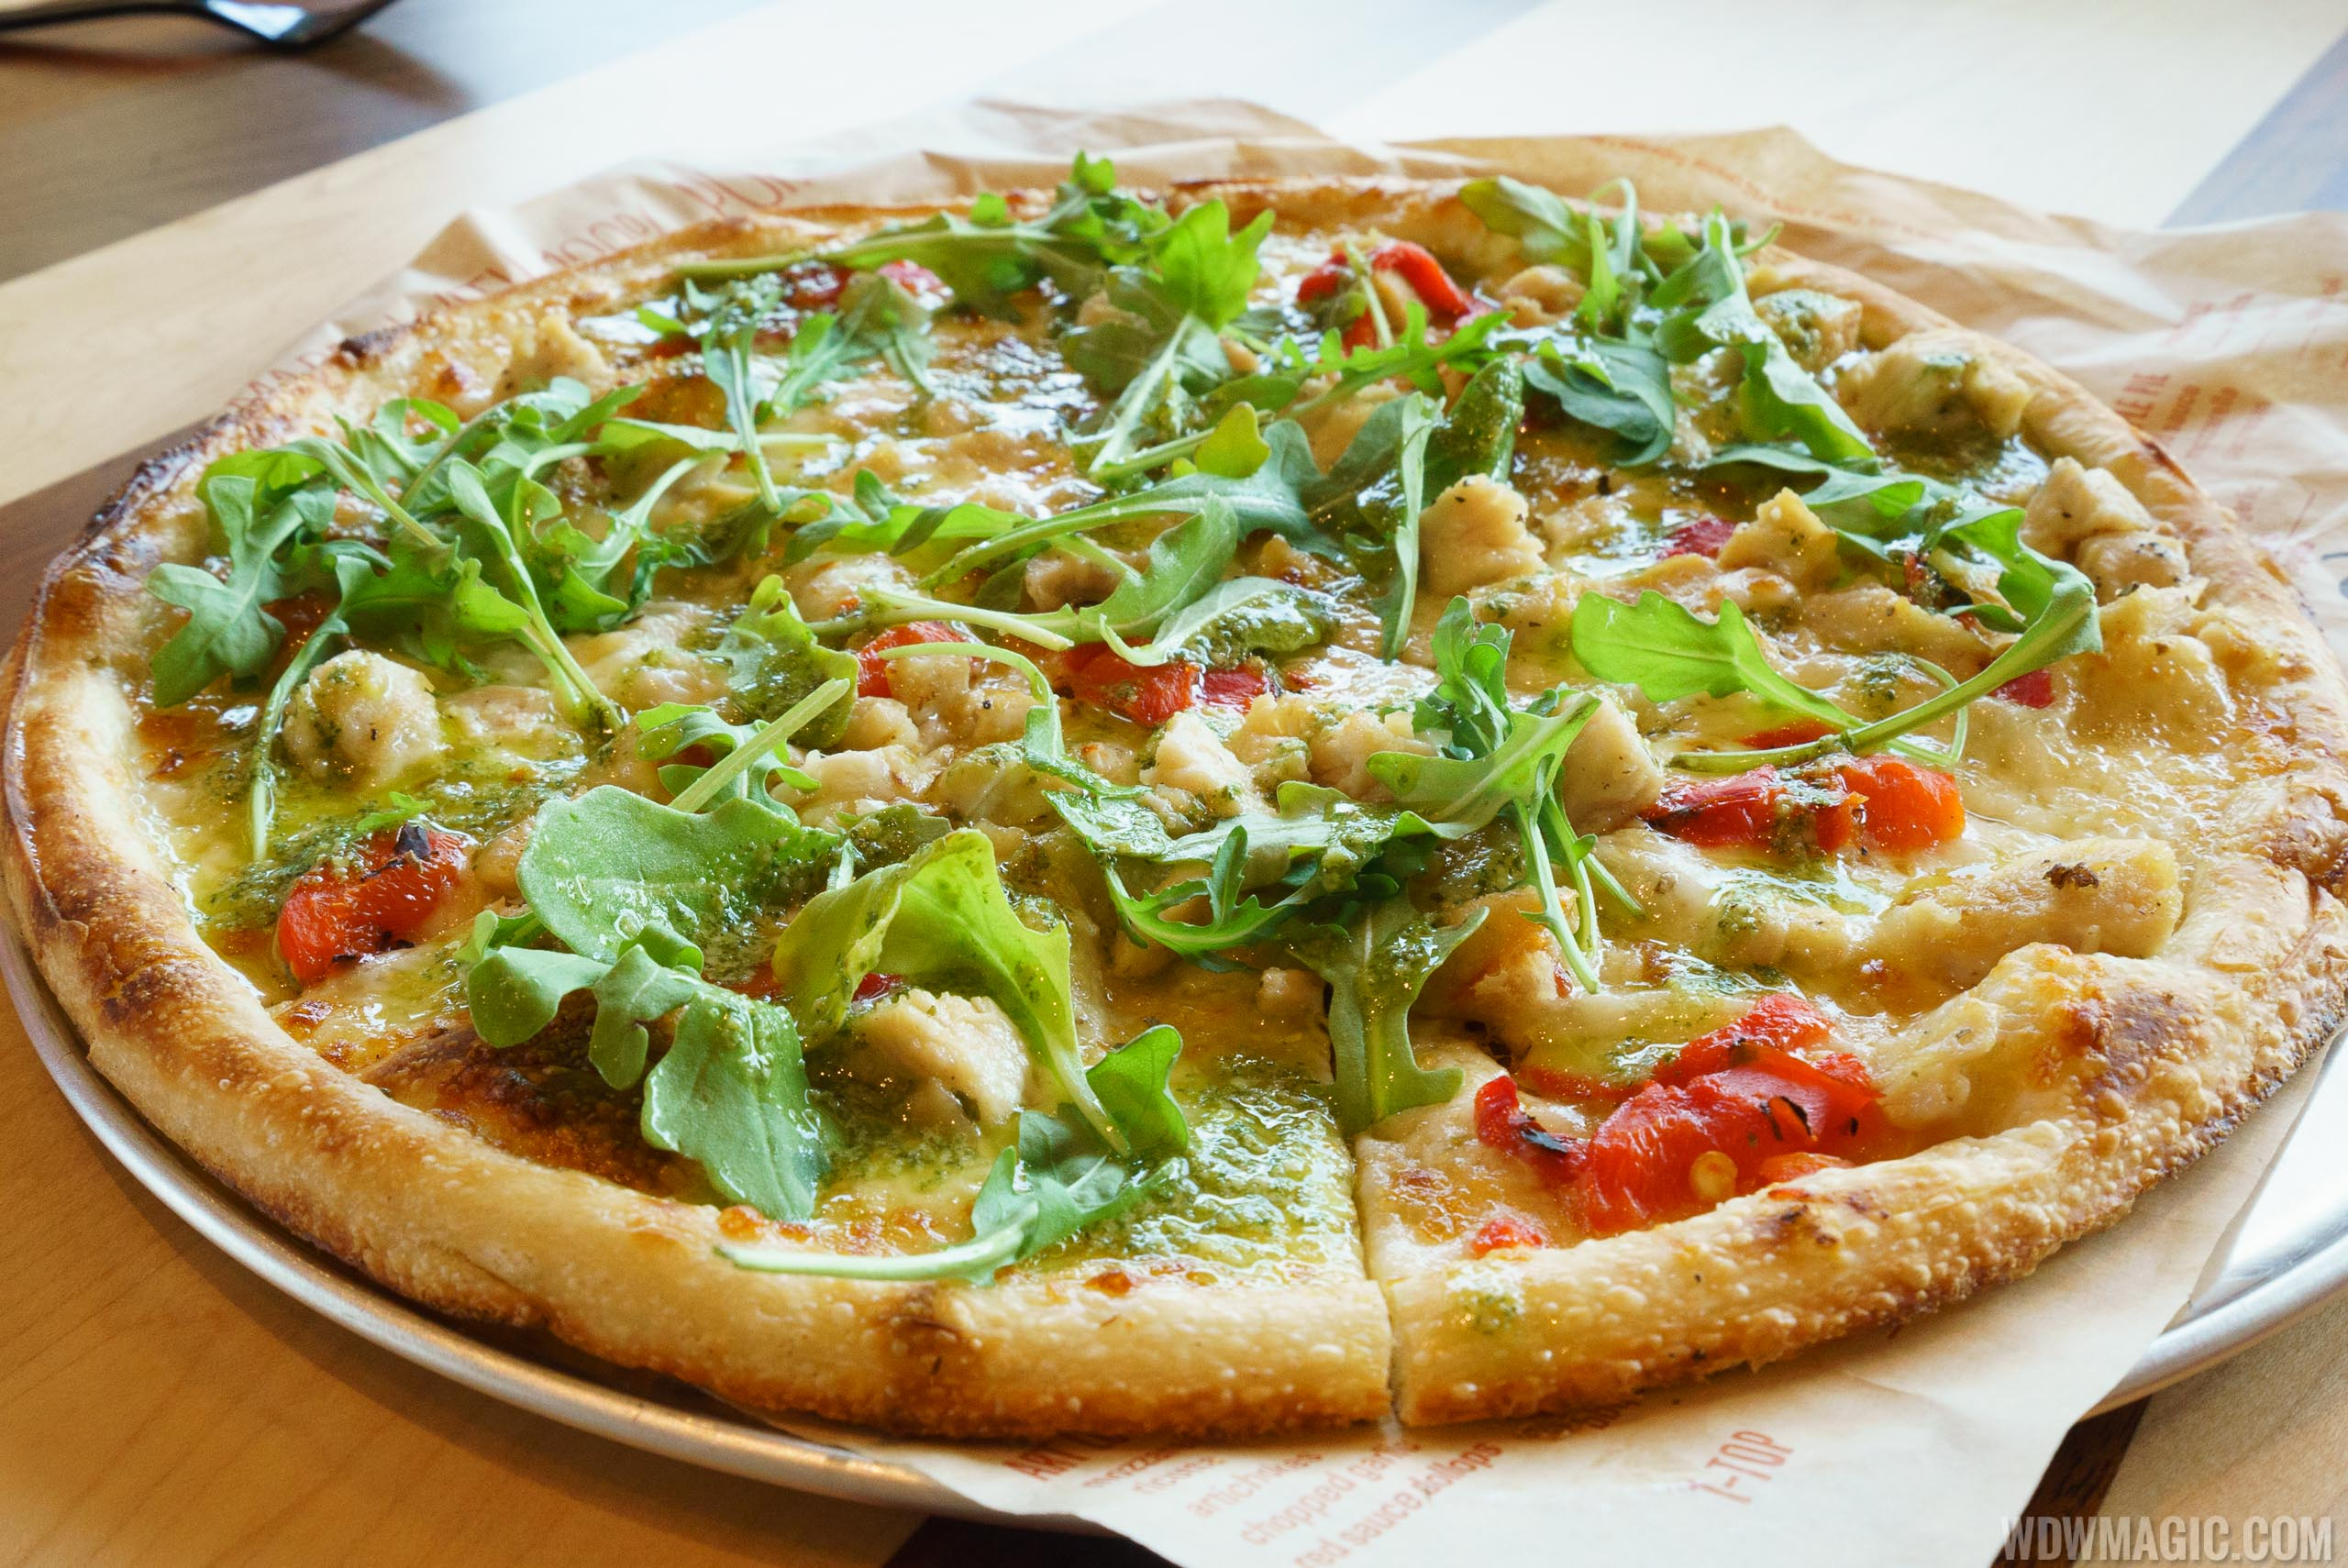 Blaze Pizza - Green Stripe signature pizza - Pesto Drizzle over Chicken, Red Peppers, Garlic, Mozzarella and Arugula